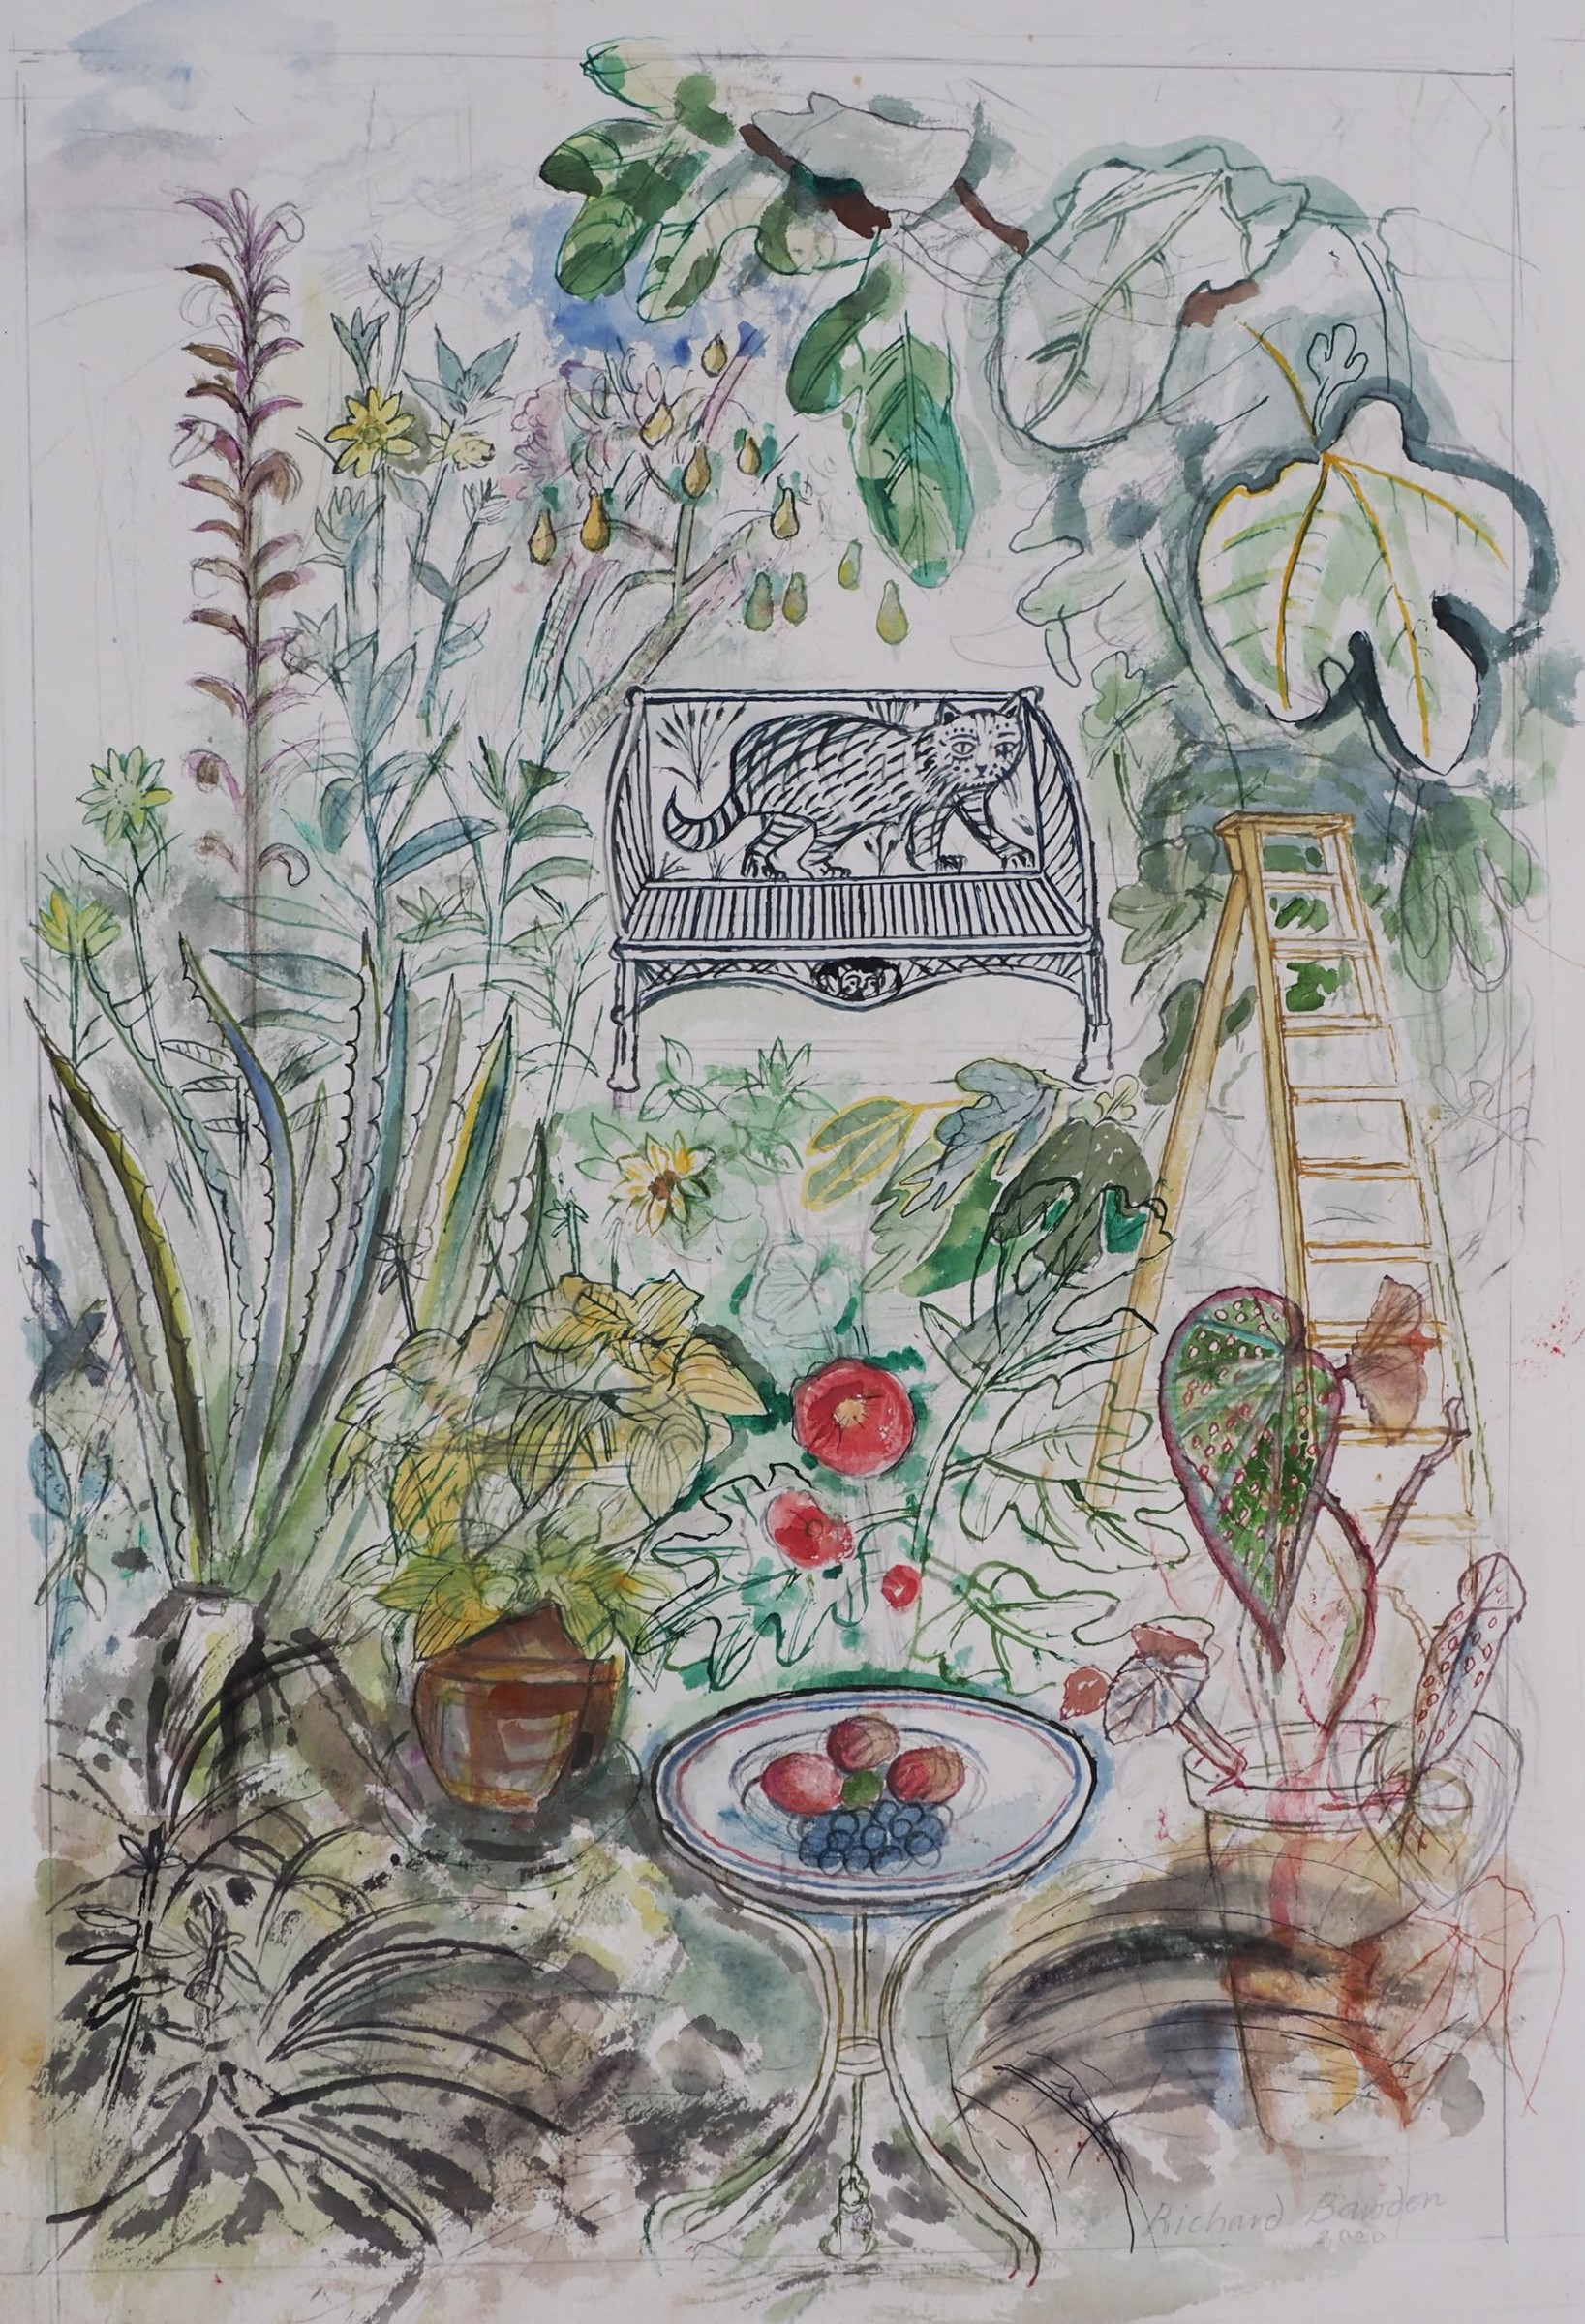 """<span class=""""link fancybox-details-link""""><a href=""""/artists/38-richard-bawden/works/12342-richard-bawden-cat-seat-in-the-jungle/"""">View Detail Page</a></span><div class=""""artist""""><span class=""""artist""""><strong>Richard Bawden</strong></span></div><div class=""""title""""><em>Cat Seat in the Jungle</em></div><div class=""""medium"""">watercolour</div><div class=""""dimensions"""">Frame: 64 x 48 cm<br /> Artwork: 43 x 32 cm</div><div class=""""price"""">£920.00</div>"""